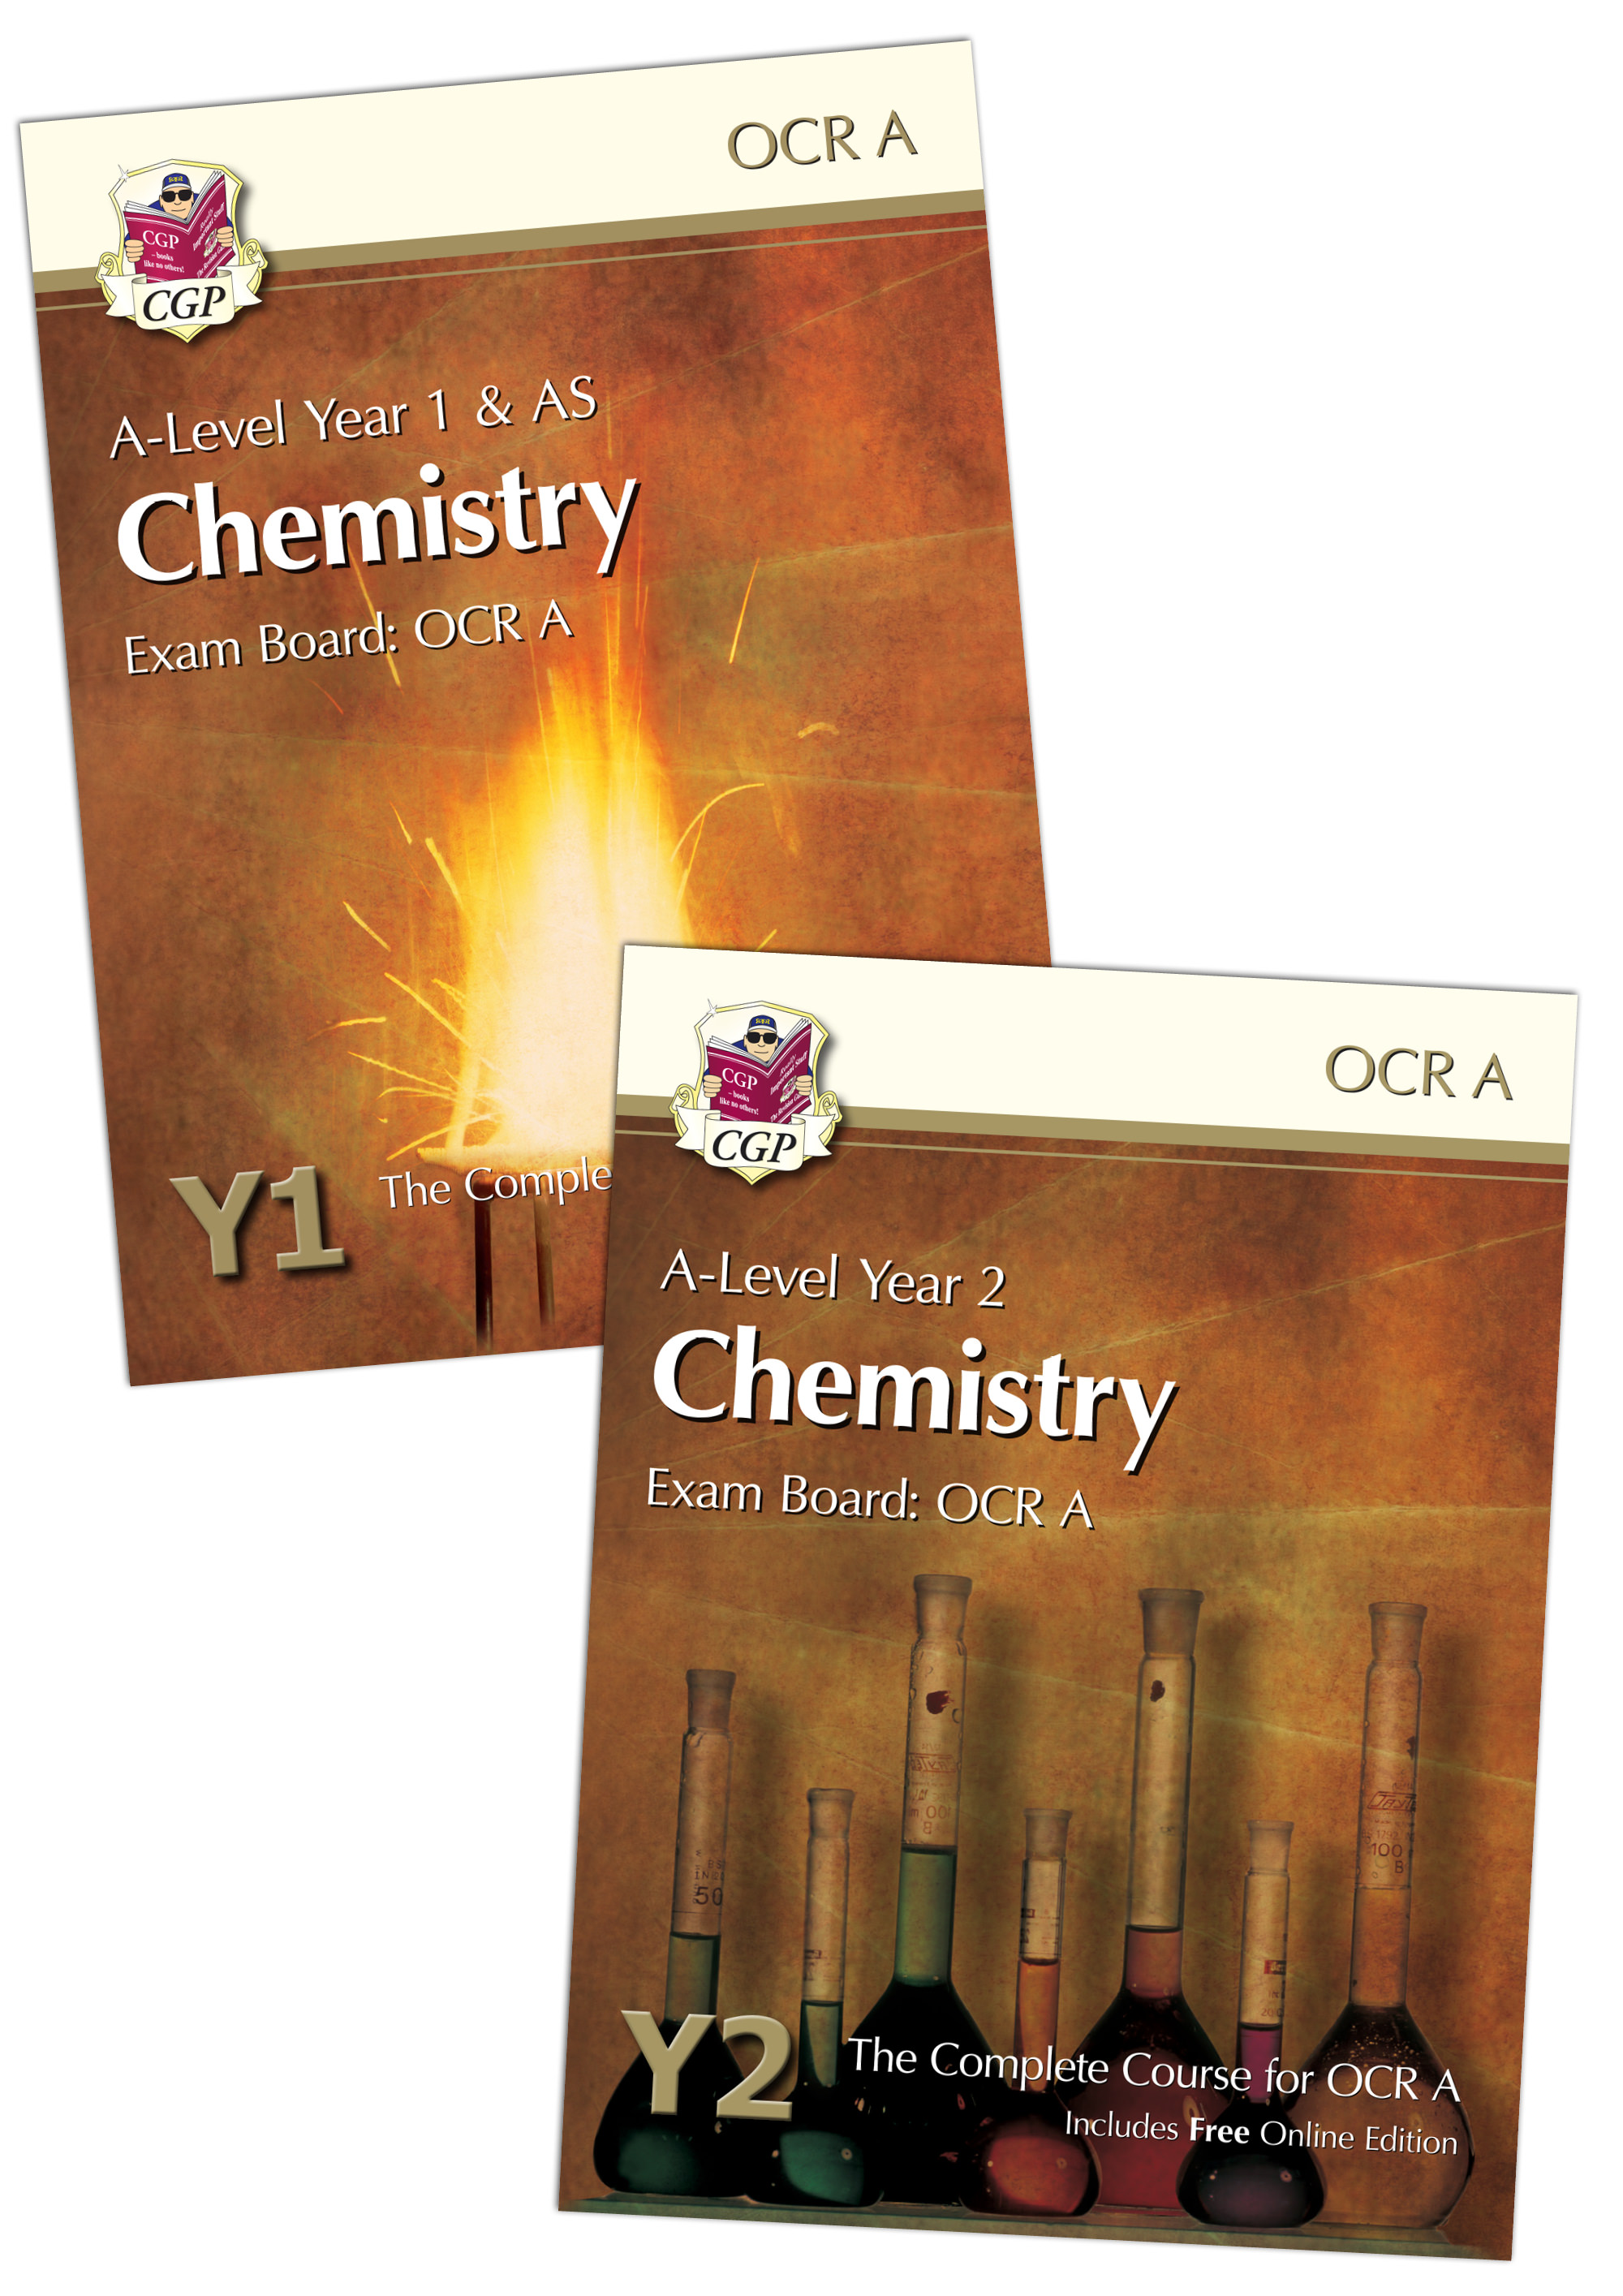 CRATBB71 - A-Level Chemistry for OCR A Student Book Bundle: Year 1 & 2 (with Online Editions)